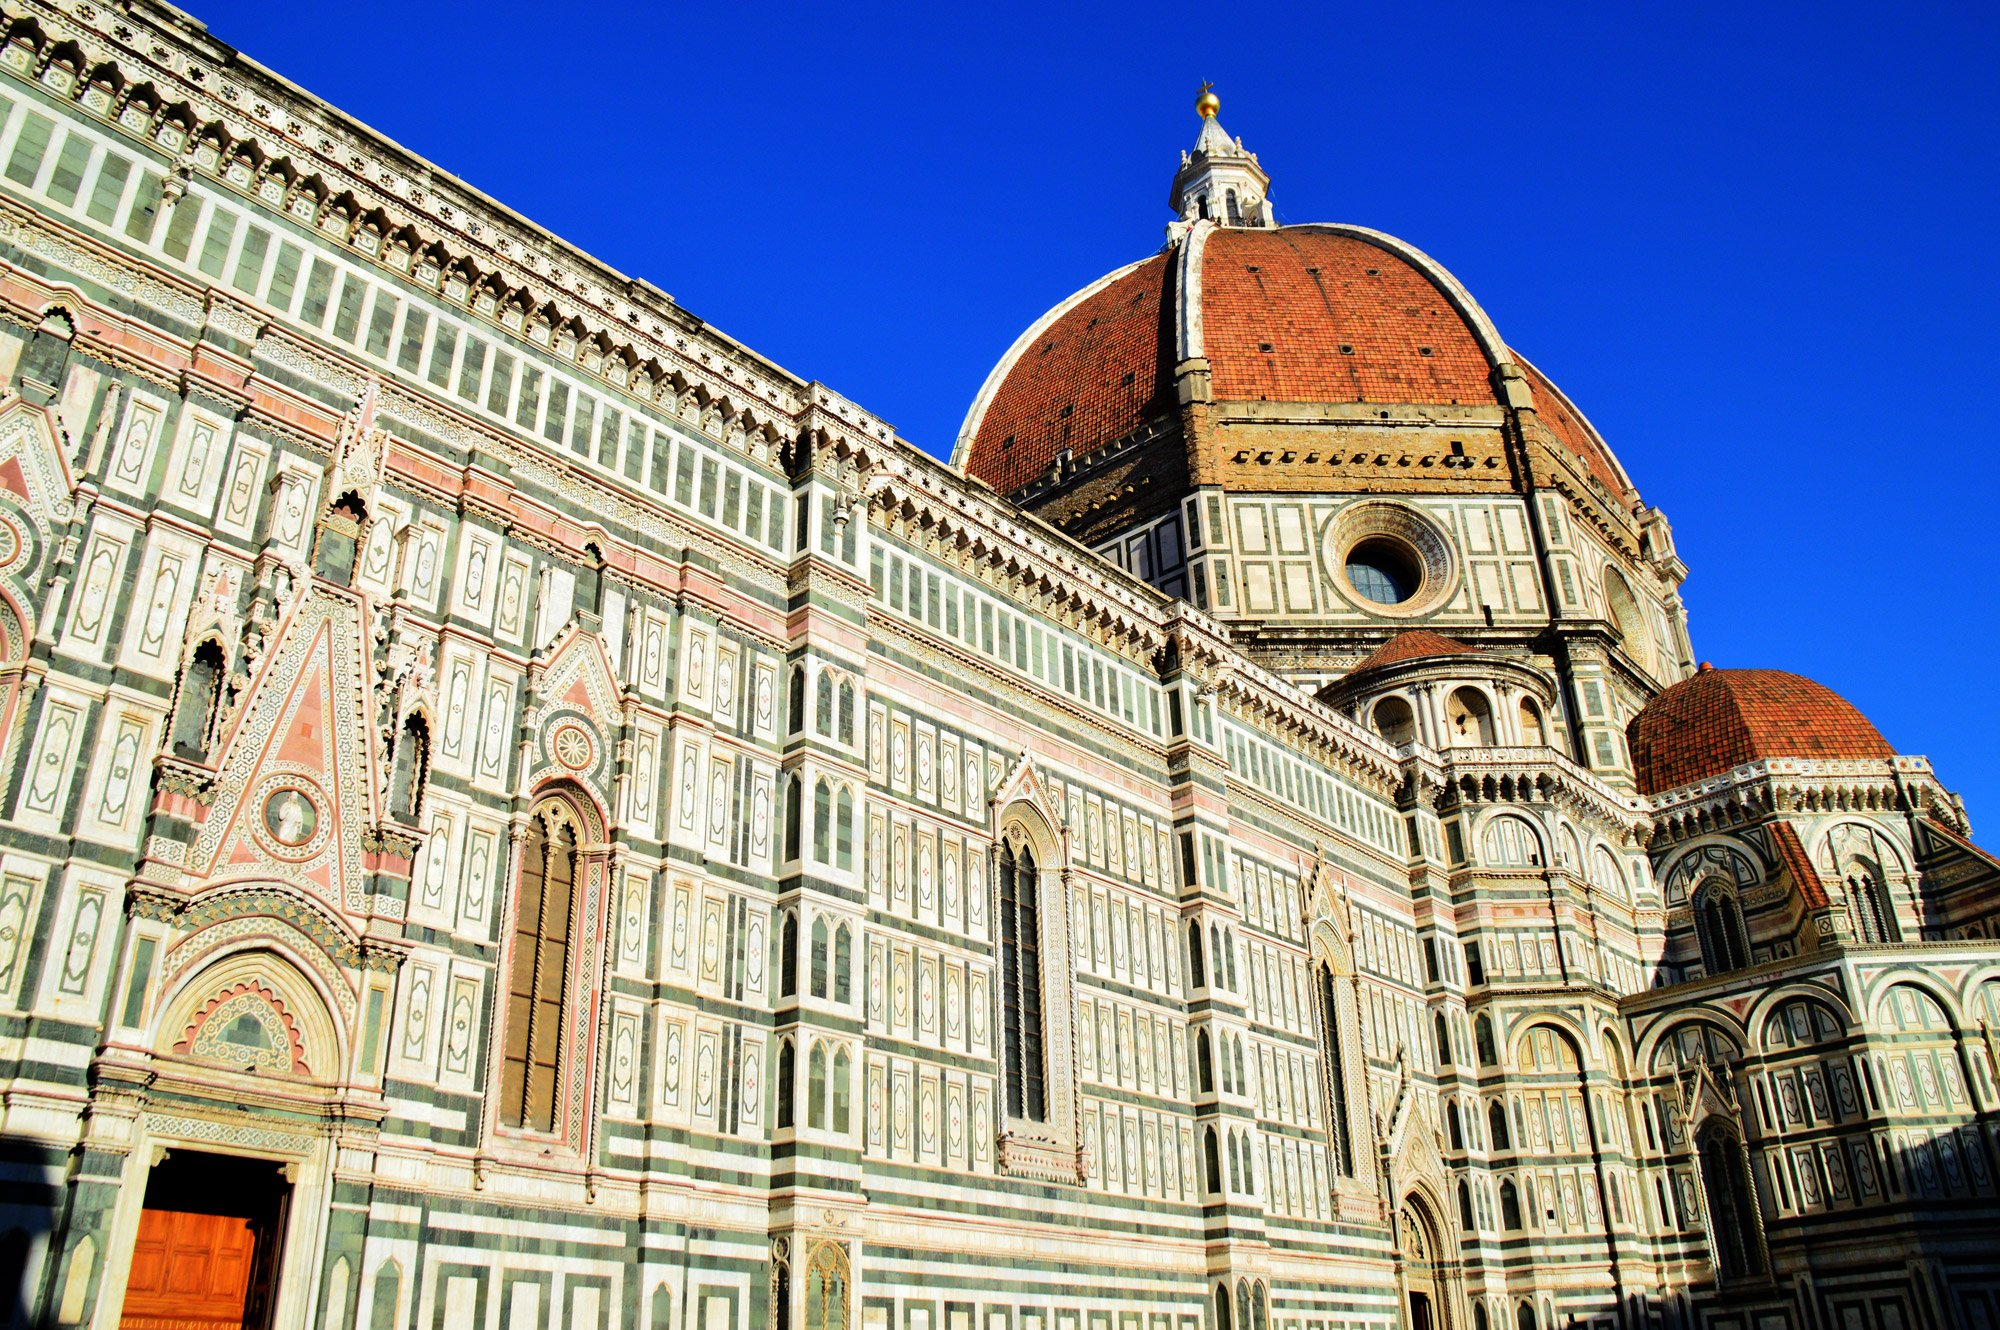 Florence is beautiful and one of Italy's best cities to visit.